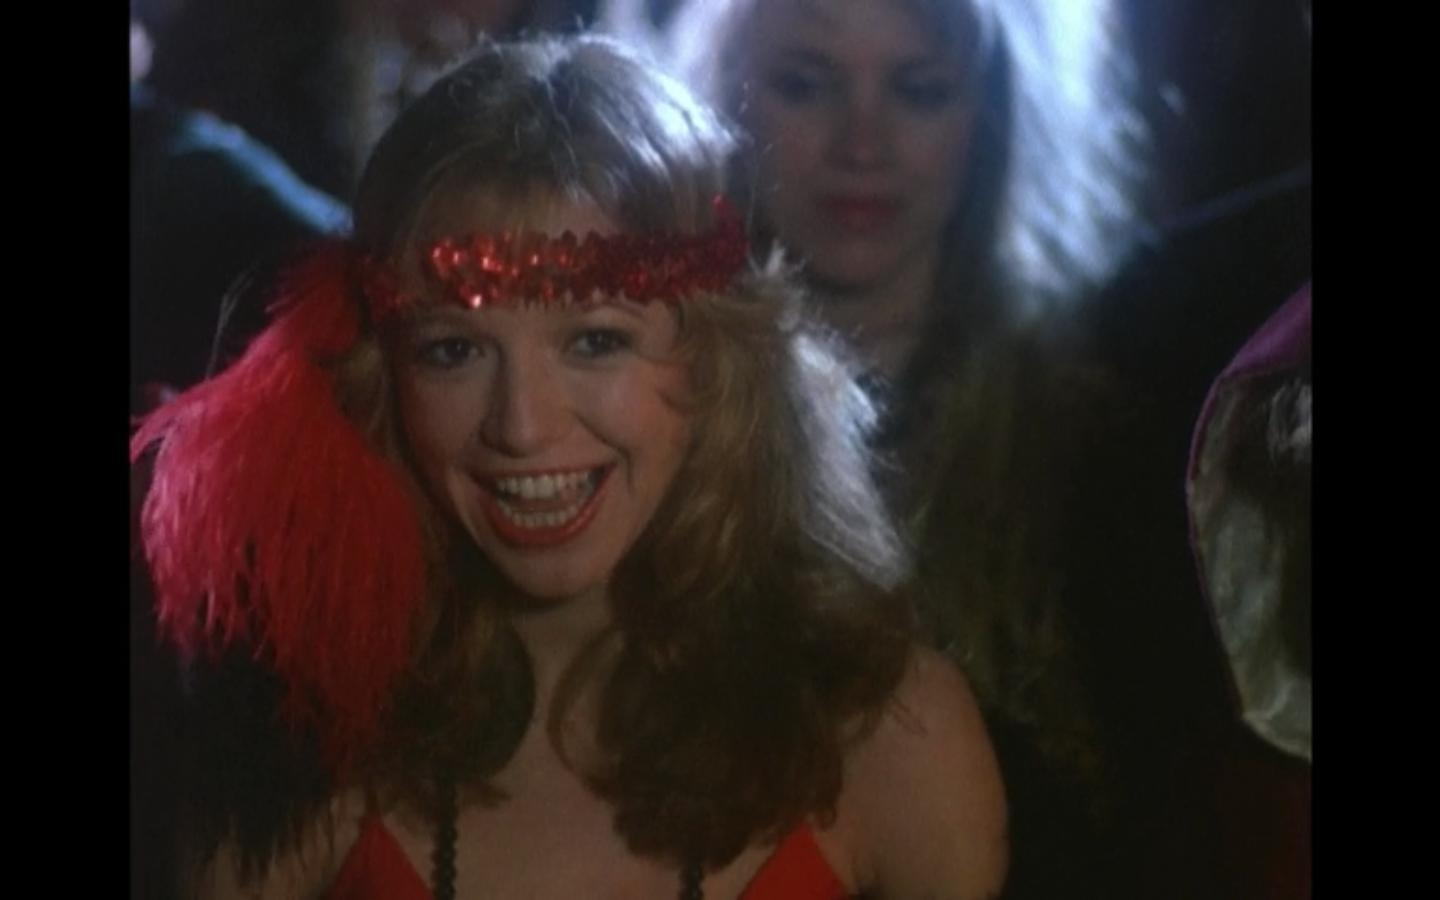 Go Back  gt  Images For  gt  Vincent Van Patten Hell NightVincent Van Patten Hell Night